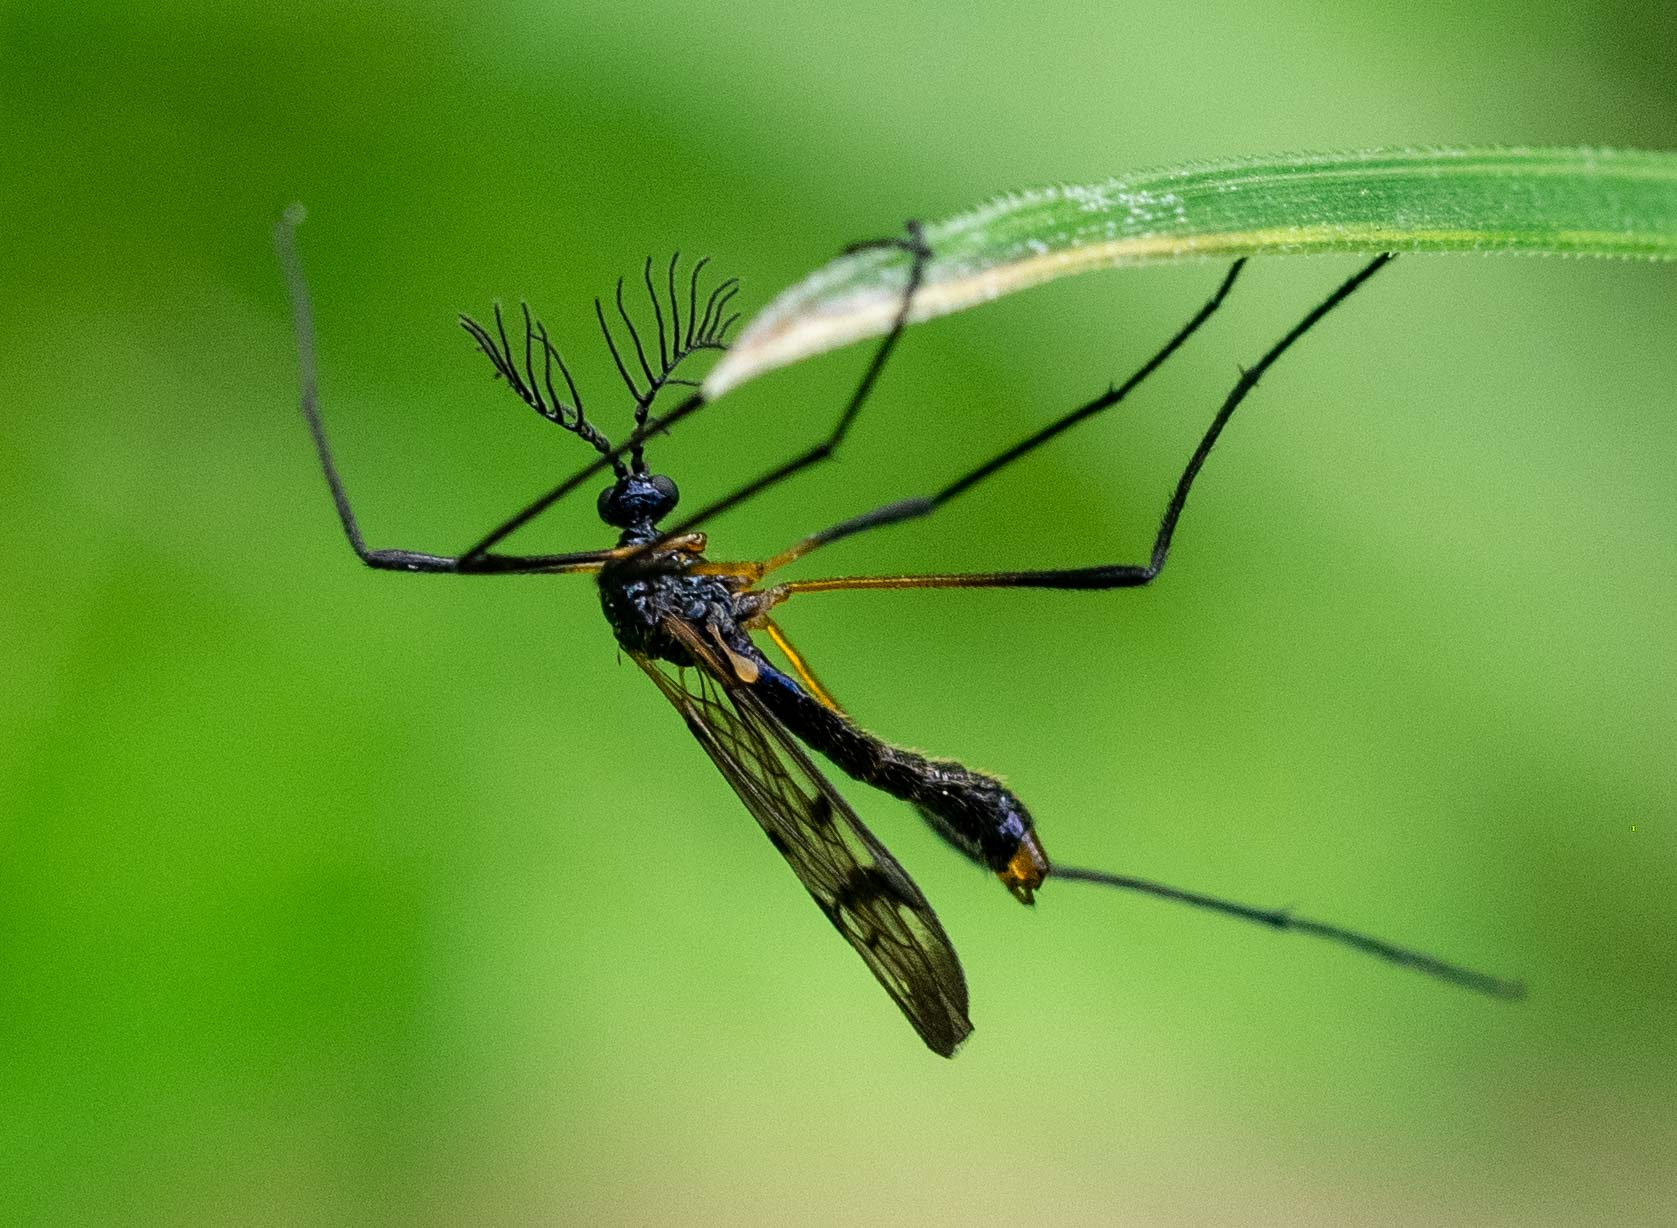 a small crane fly